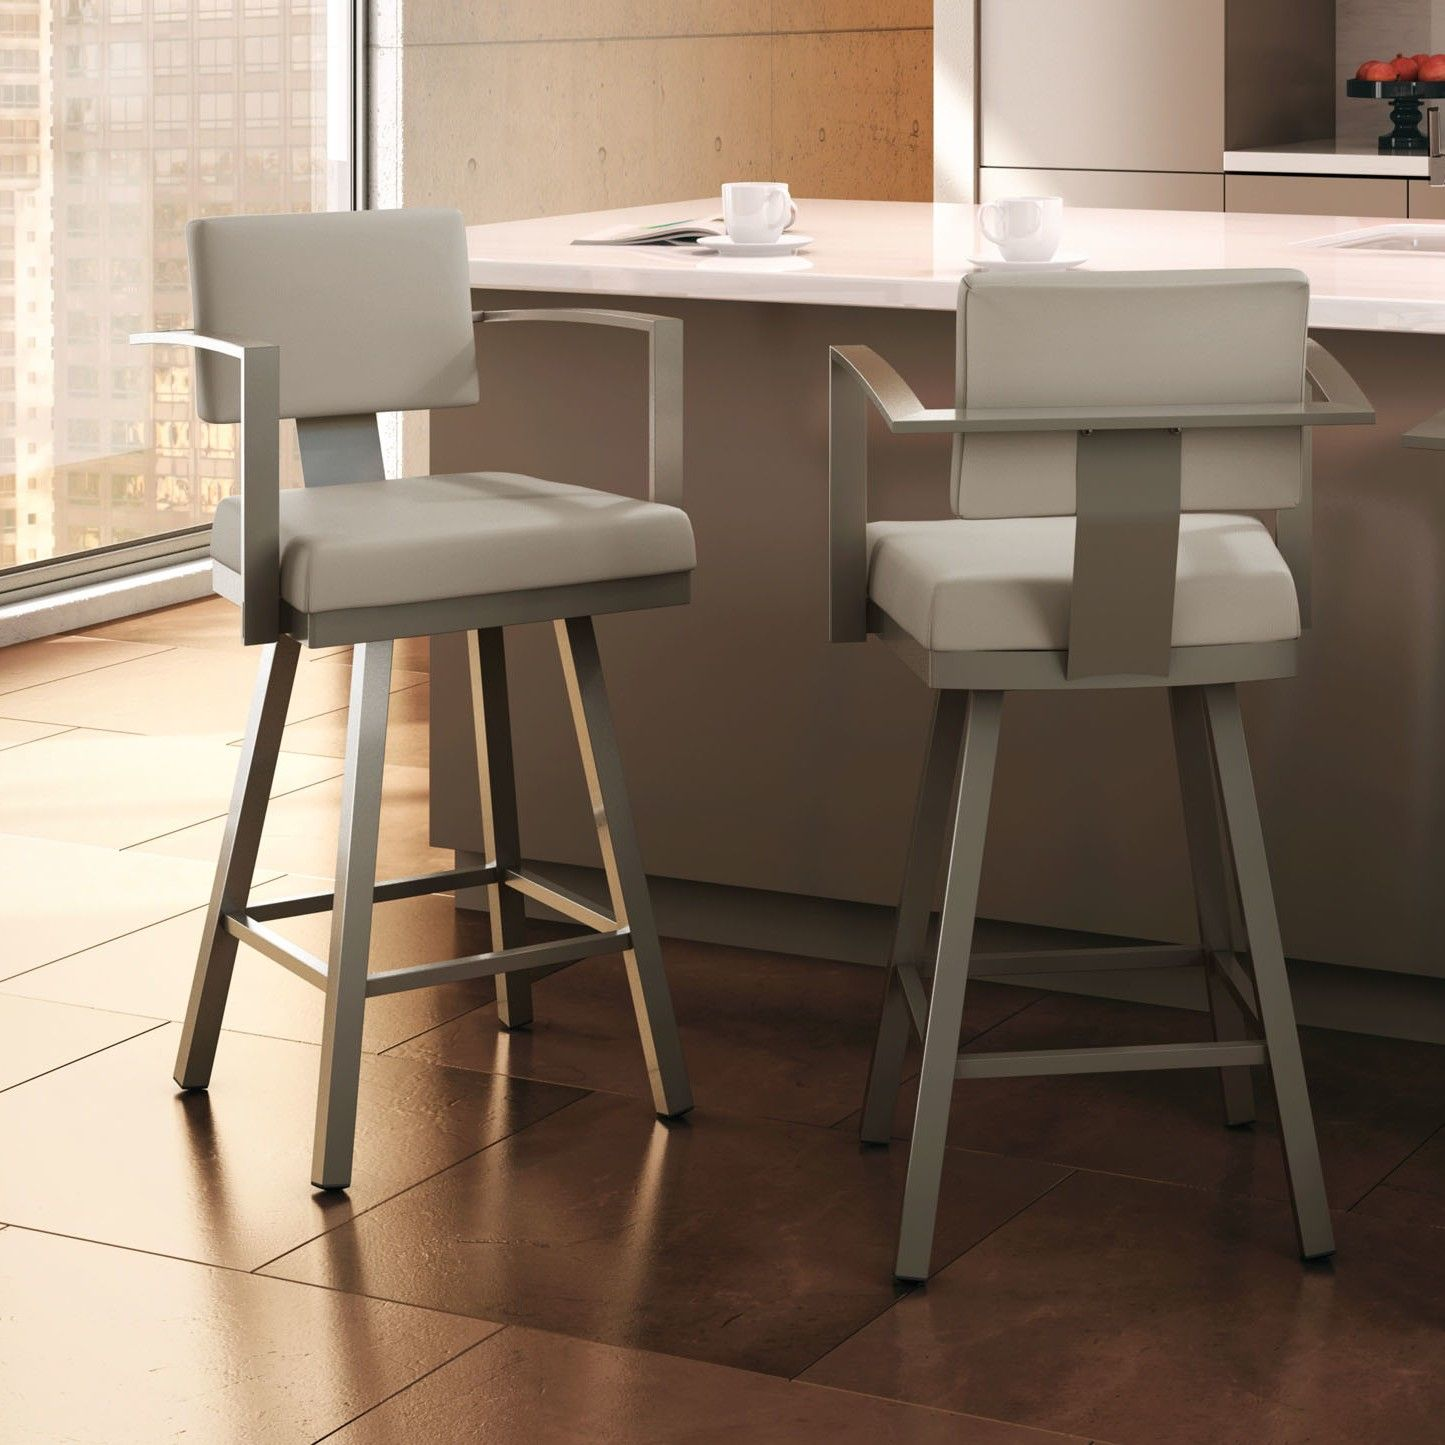 Kitchen Island Height Bar Stools Bar Stools With Backs For Inspiring High Chair Design